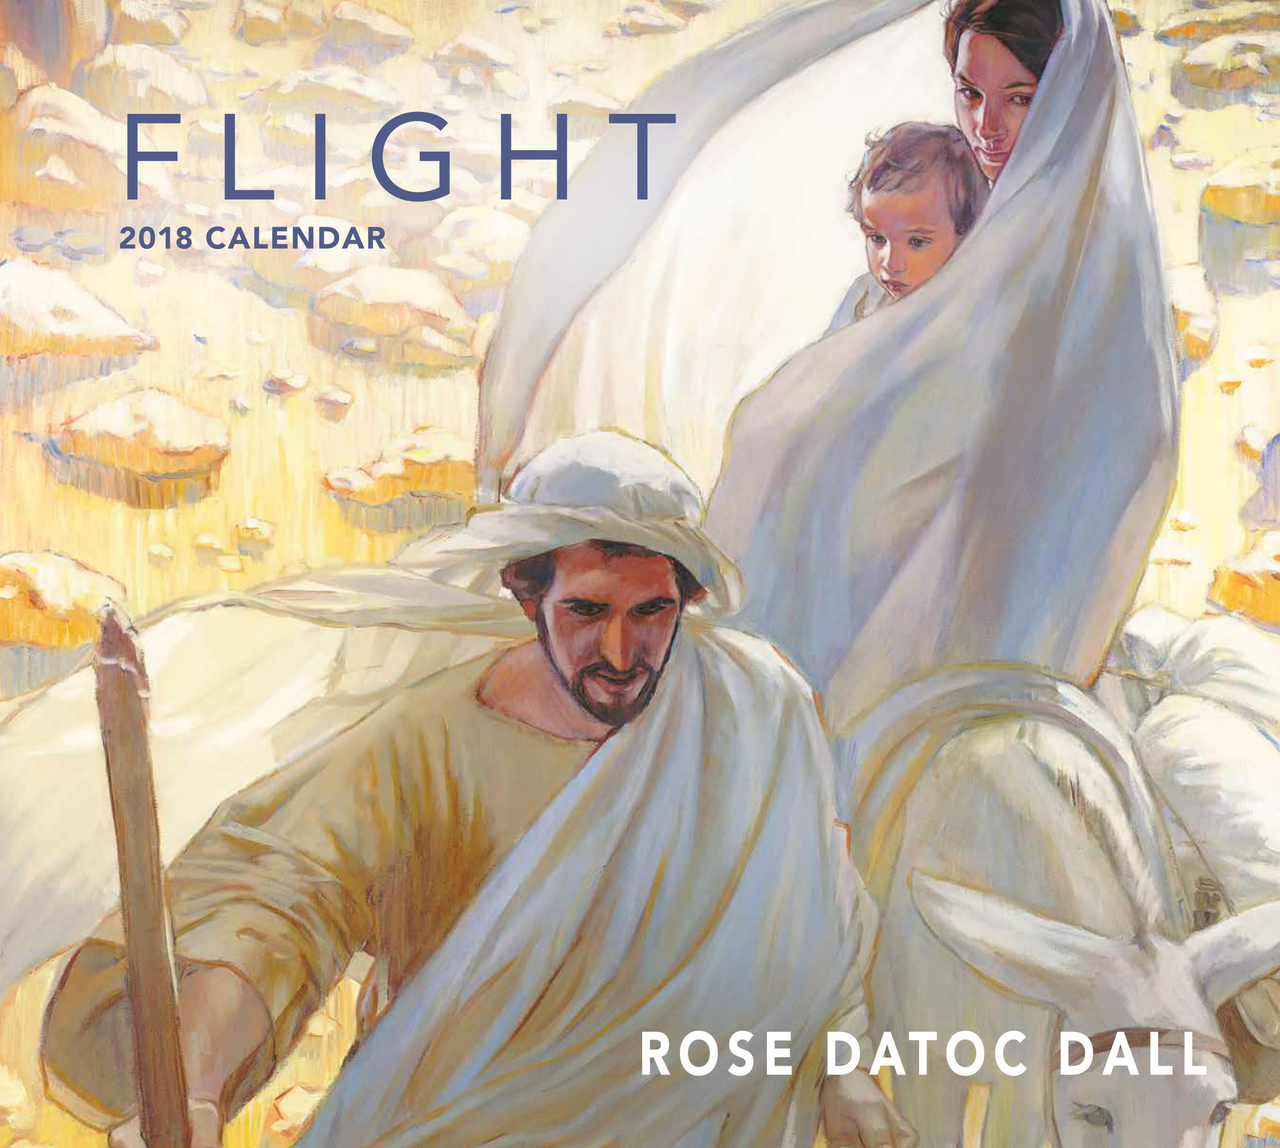 2018 flight calendar rose datoc dall afa rdcal2018